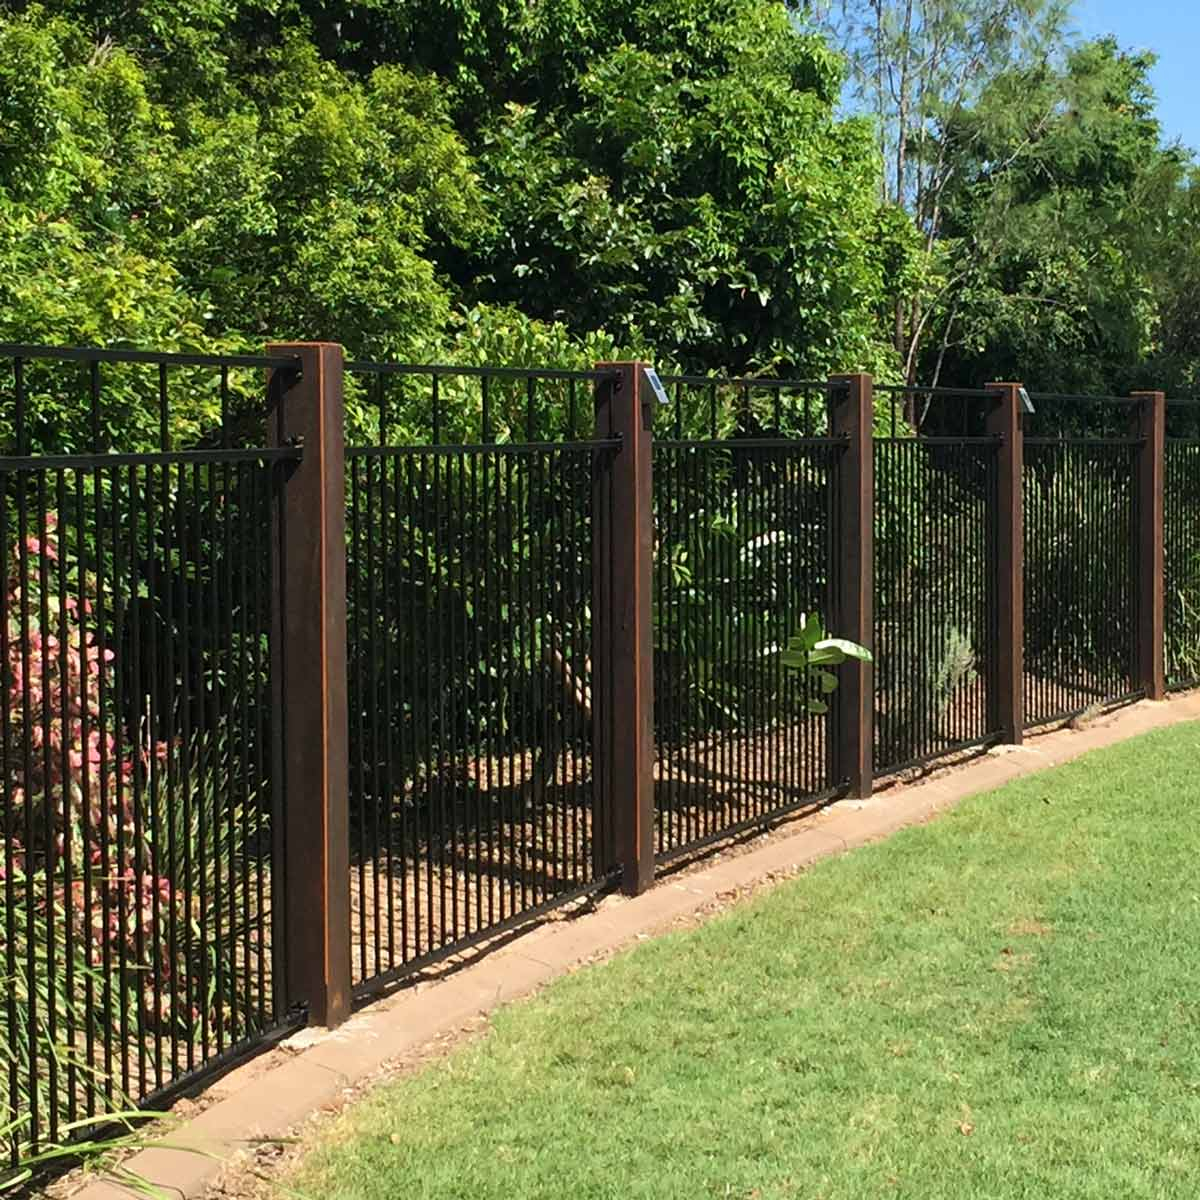 Yard Fencing 10 Modern Fence Ideas Family Handyman intended for Cheap Backyard Fencing